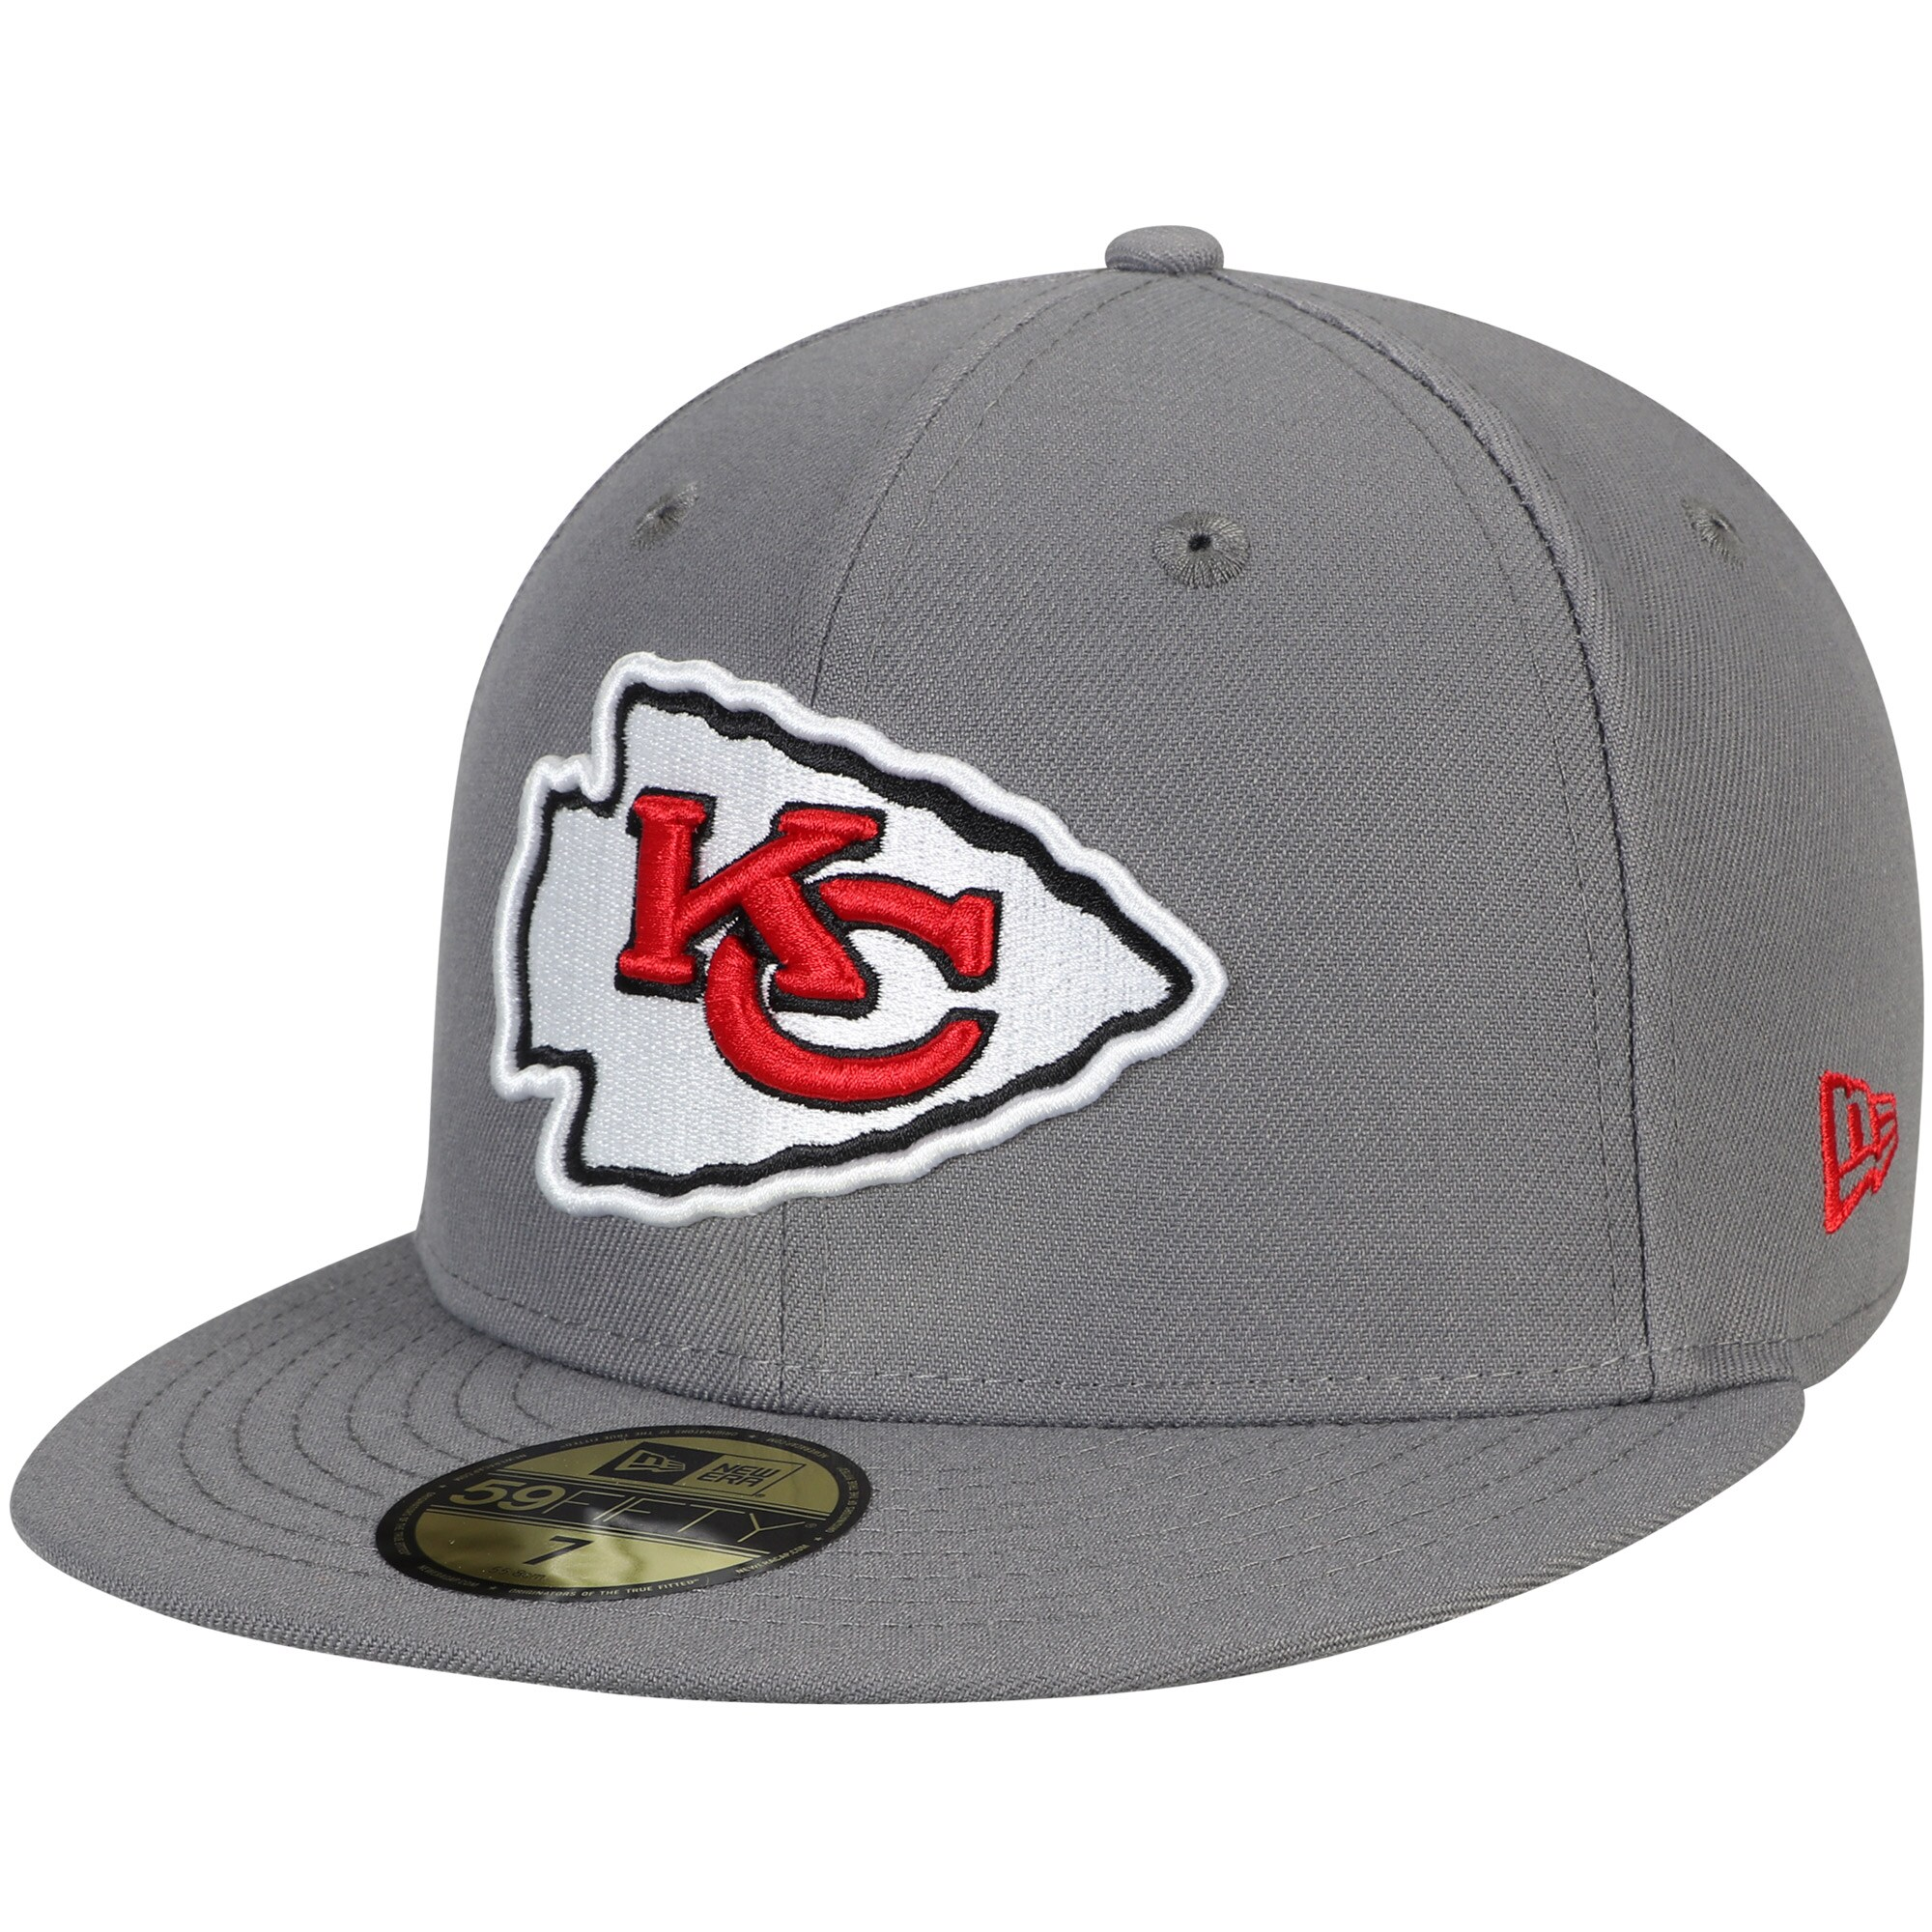 Kansas City Chiefs New Era Storm 59FIFTY Fitted Hat - Graphite